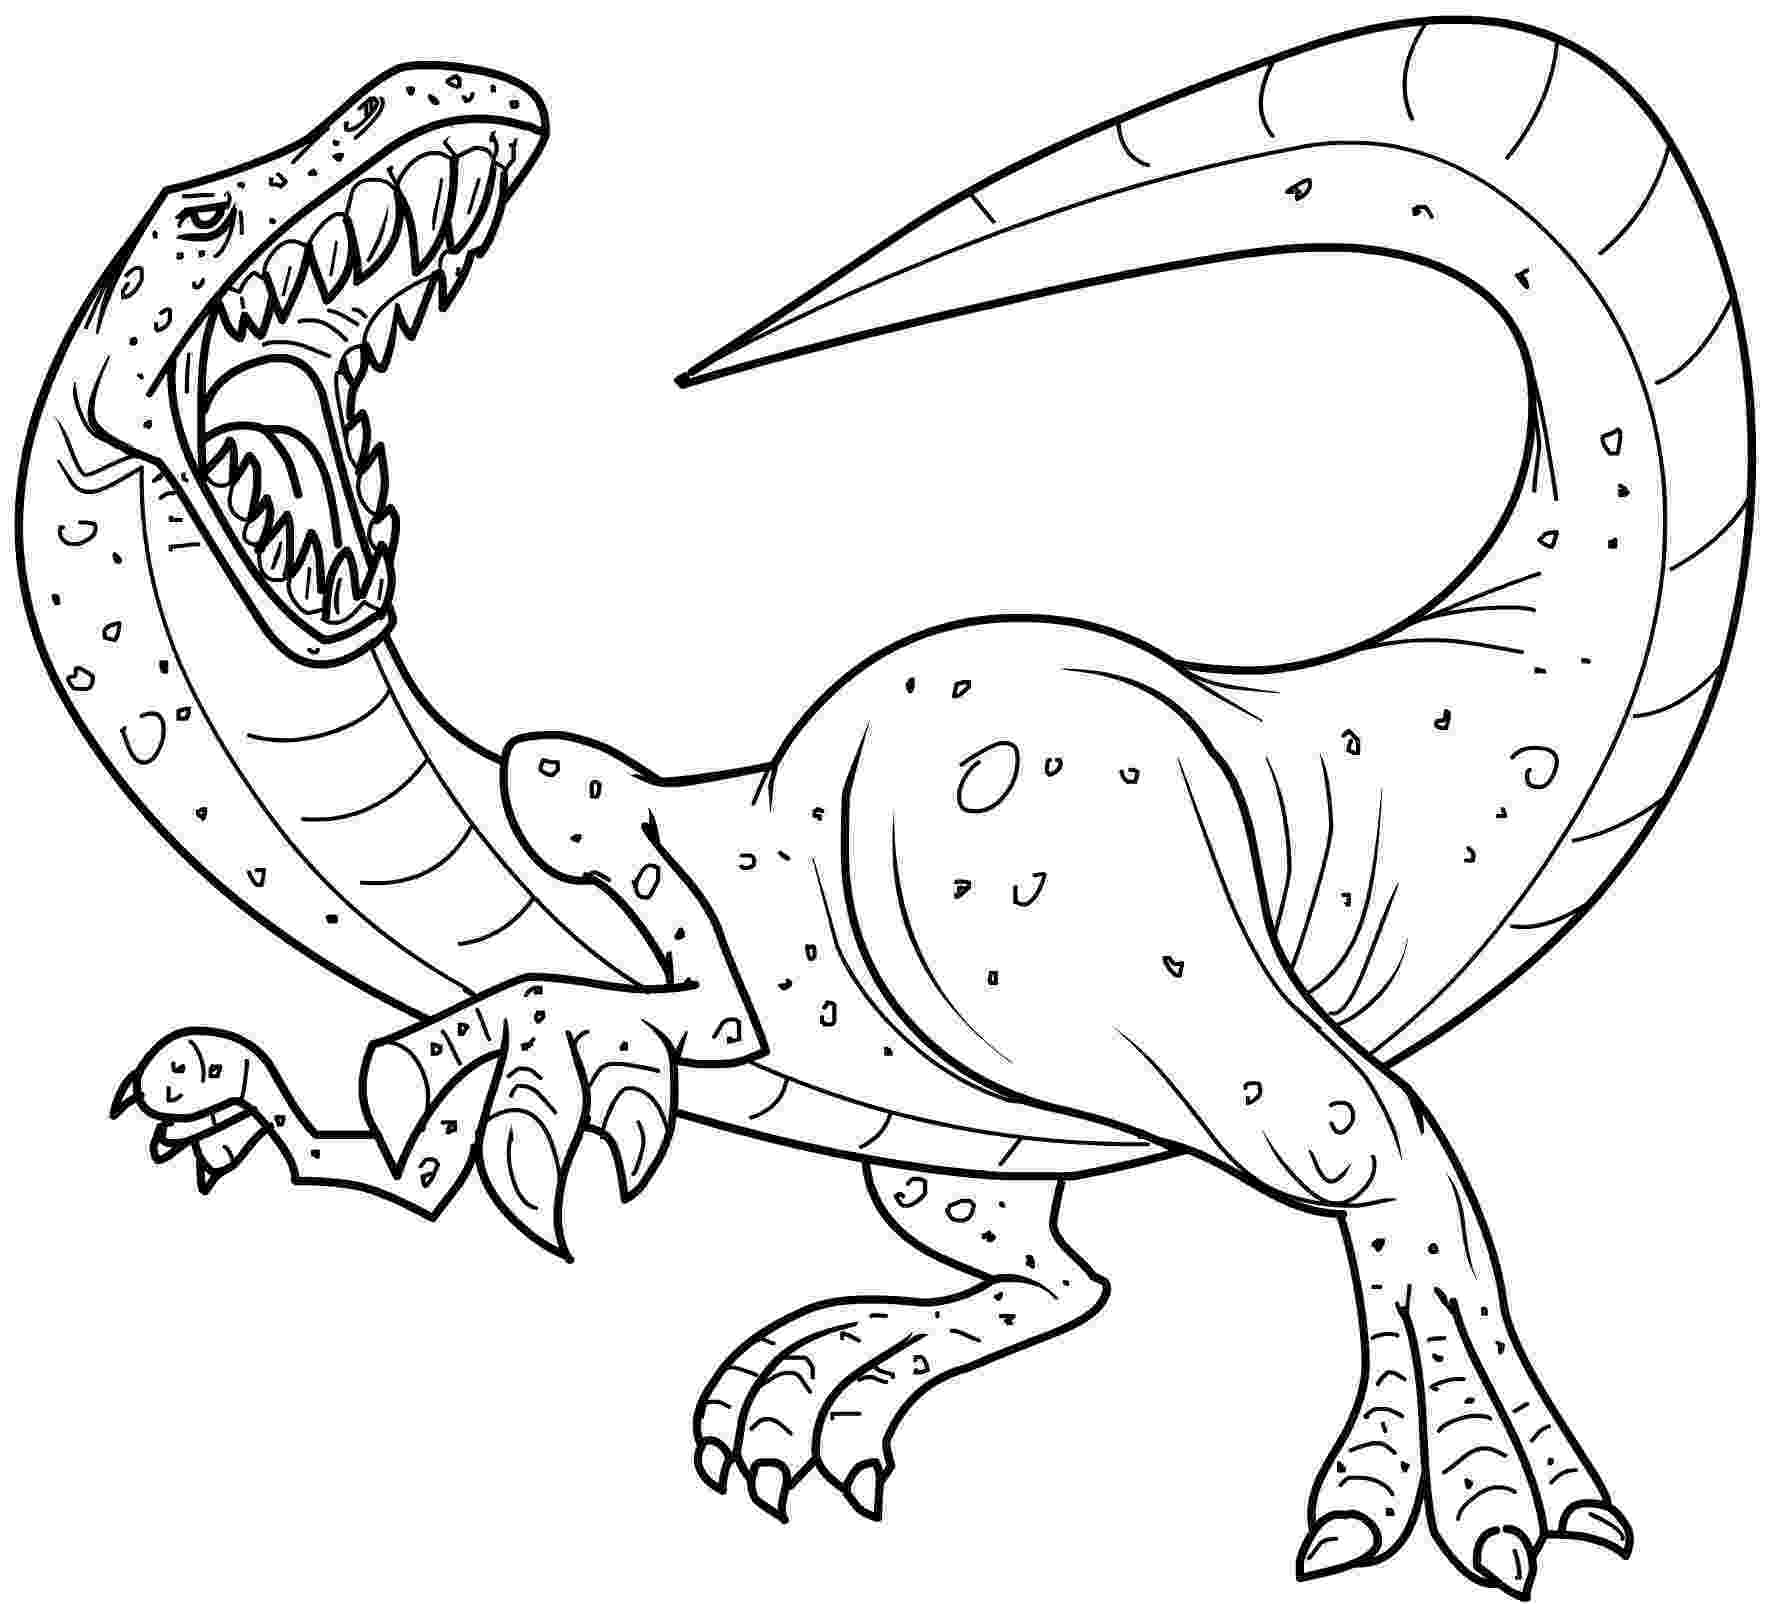 dinosaur coloring pages for toddlers free printable dinosaur coloring pages for kids dinosaur toddlers for pages coloring